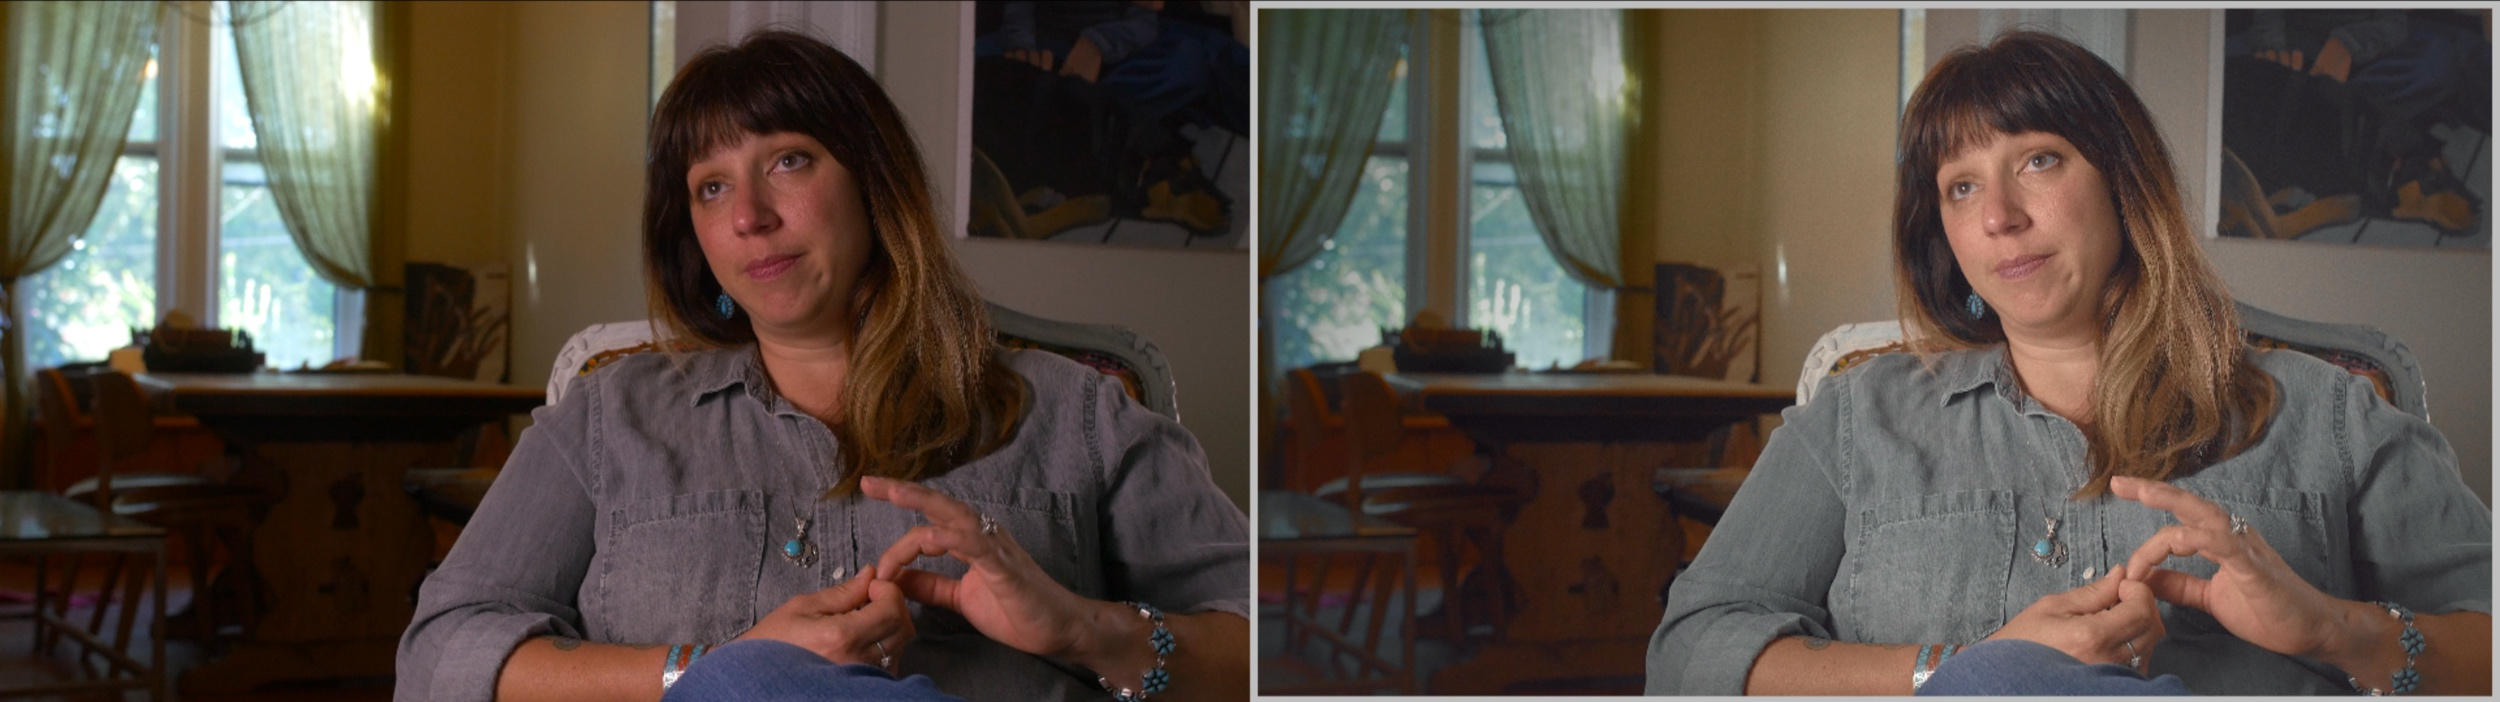 All scenes of the film, with the exception of 'The Cube', were meant to feel run and gun. Like they got off their bikes, set up cameras, sat down, and stared the their interview. Before (Left), After (Right).